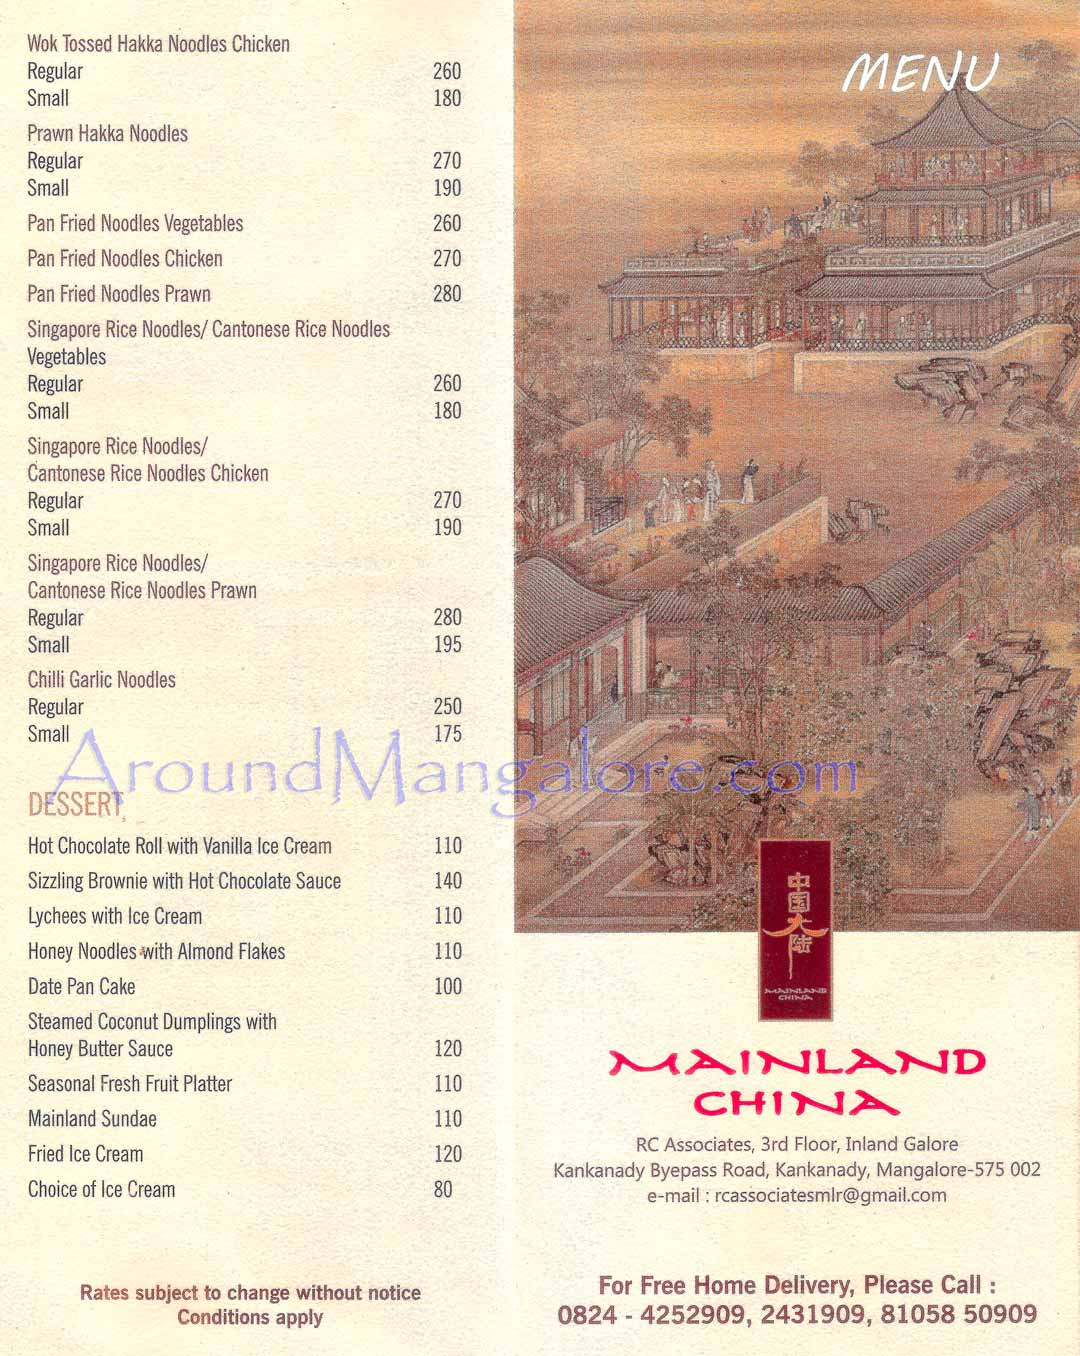 Food Menu - Mainland China - Chinese Restaurant  - Kankanady, Mangalore